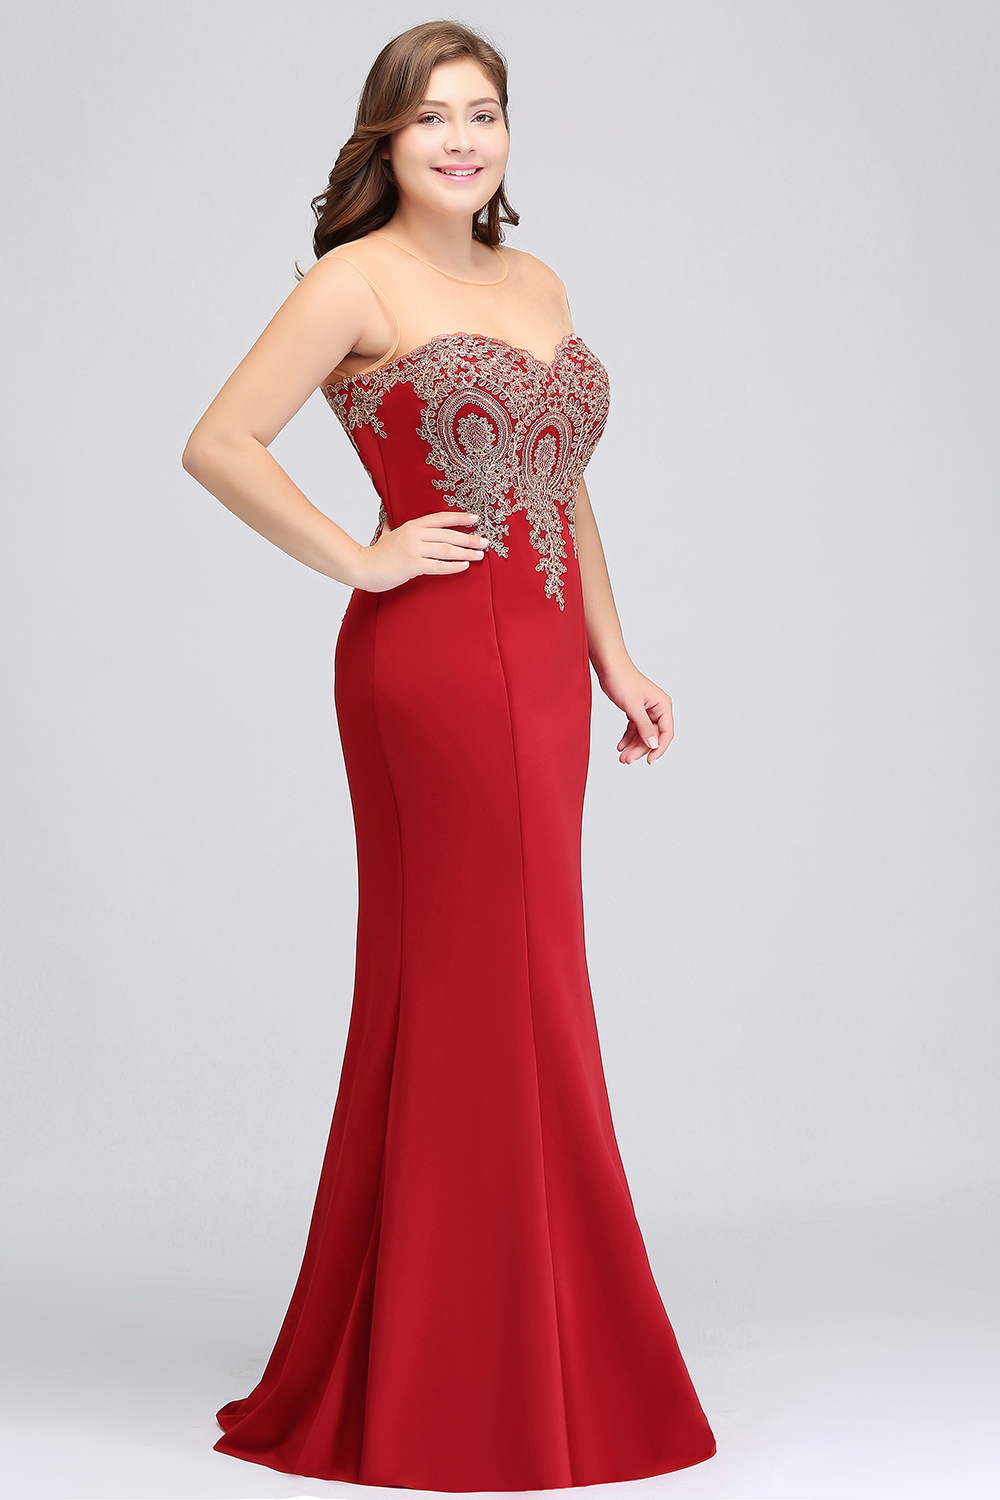 Image 5 - Plus Size Long Evening Dress 2019 Mermaid Formal Dress Party Elegant Evening Gown Sleeveless Applique robe de soiree-in Evening Dresses from Weddings & Events